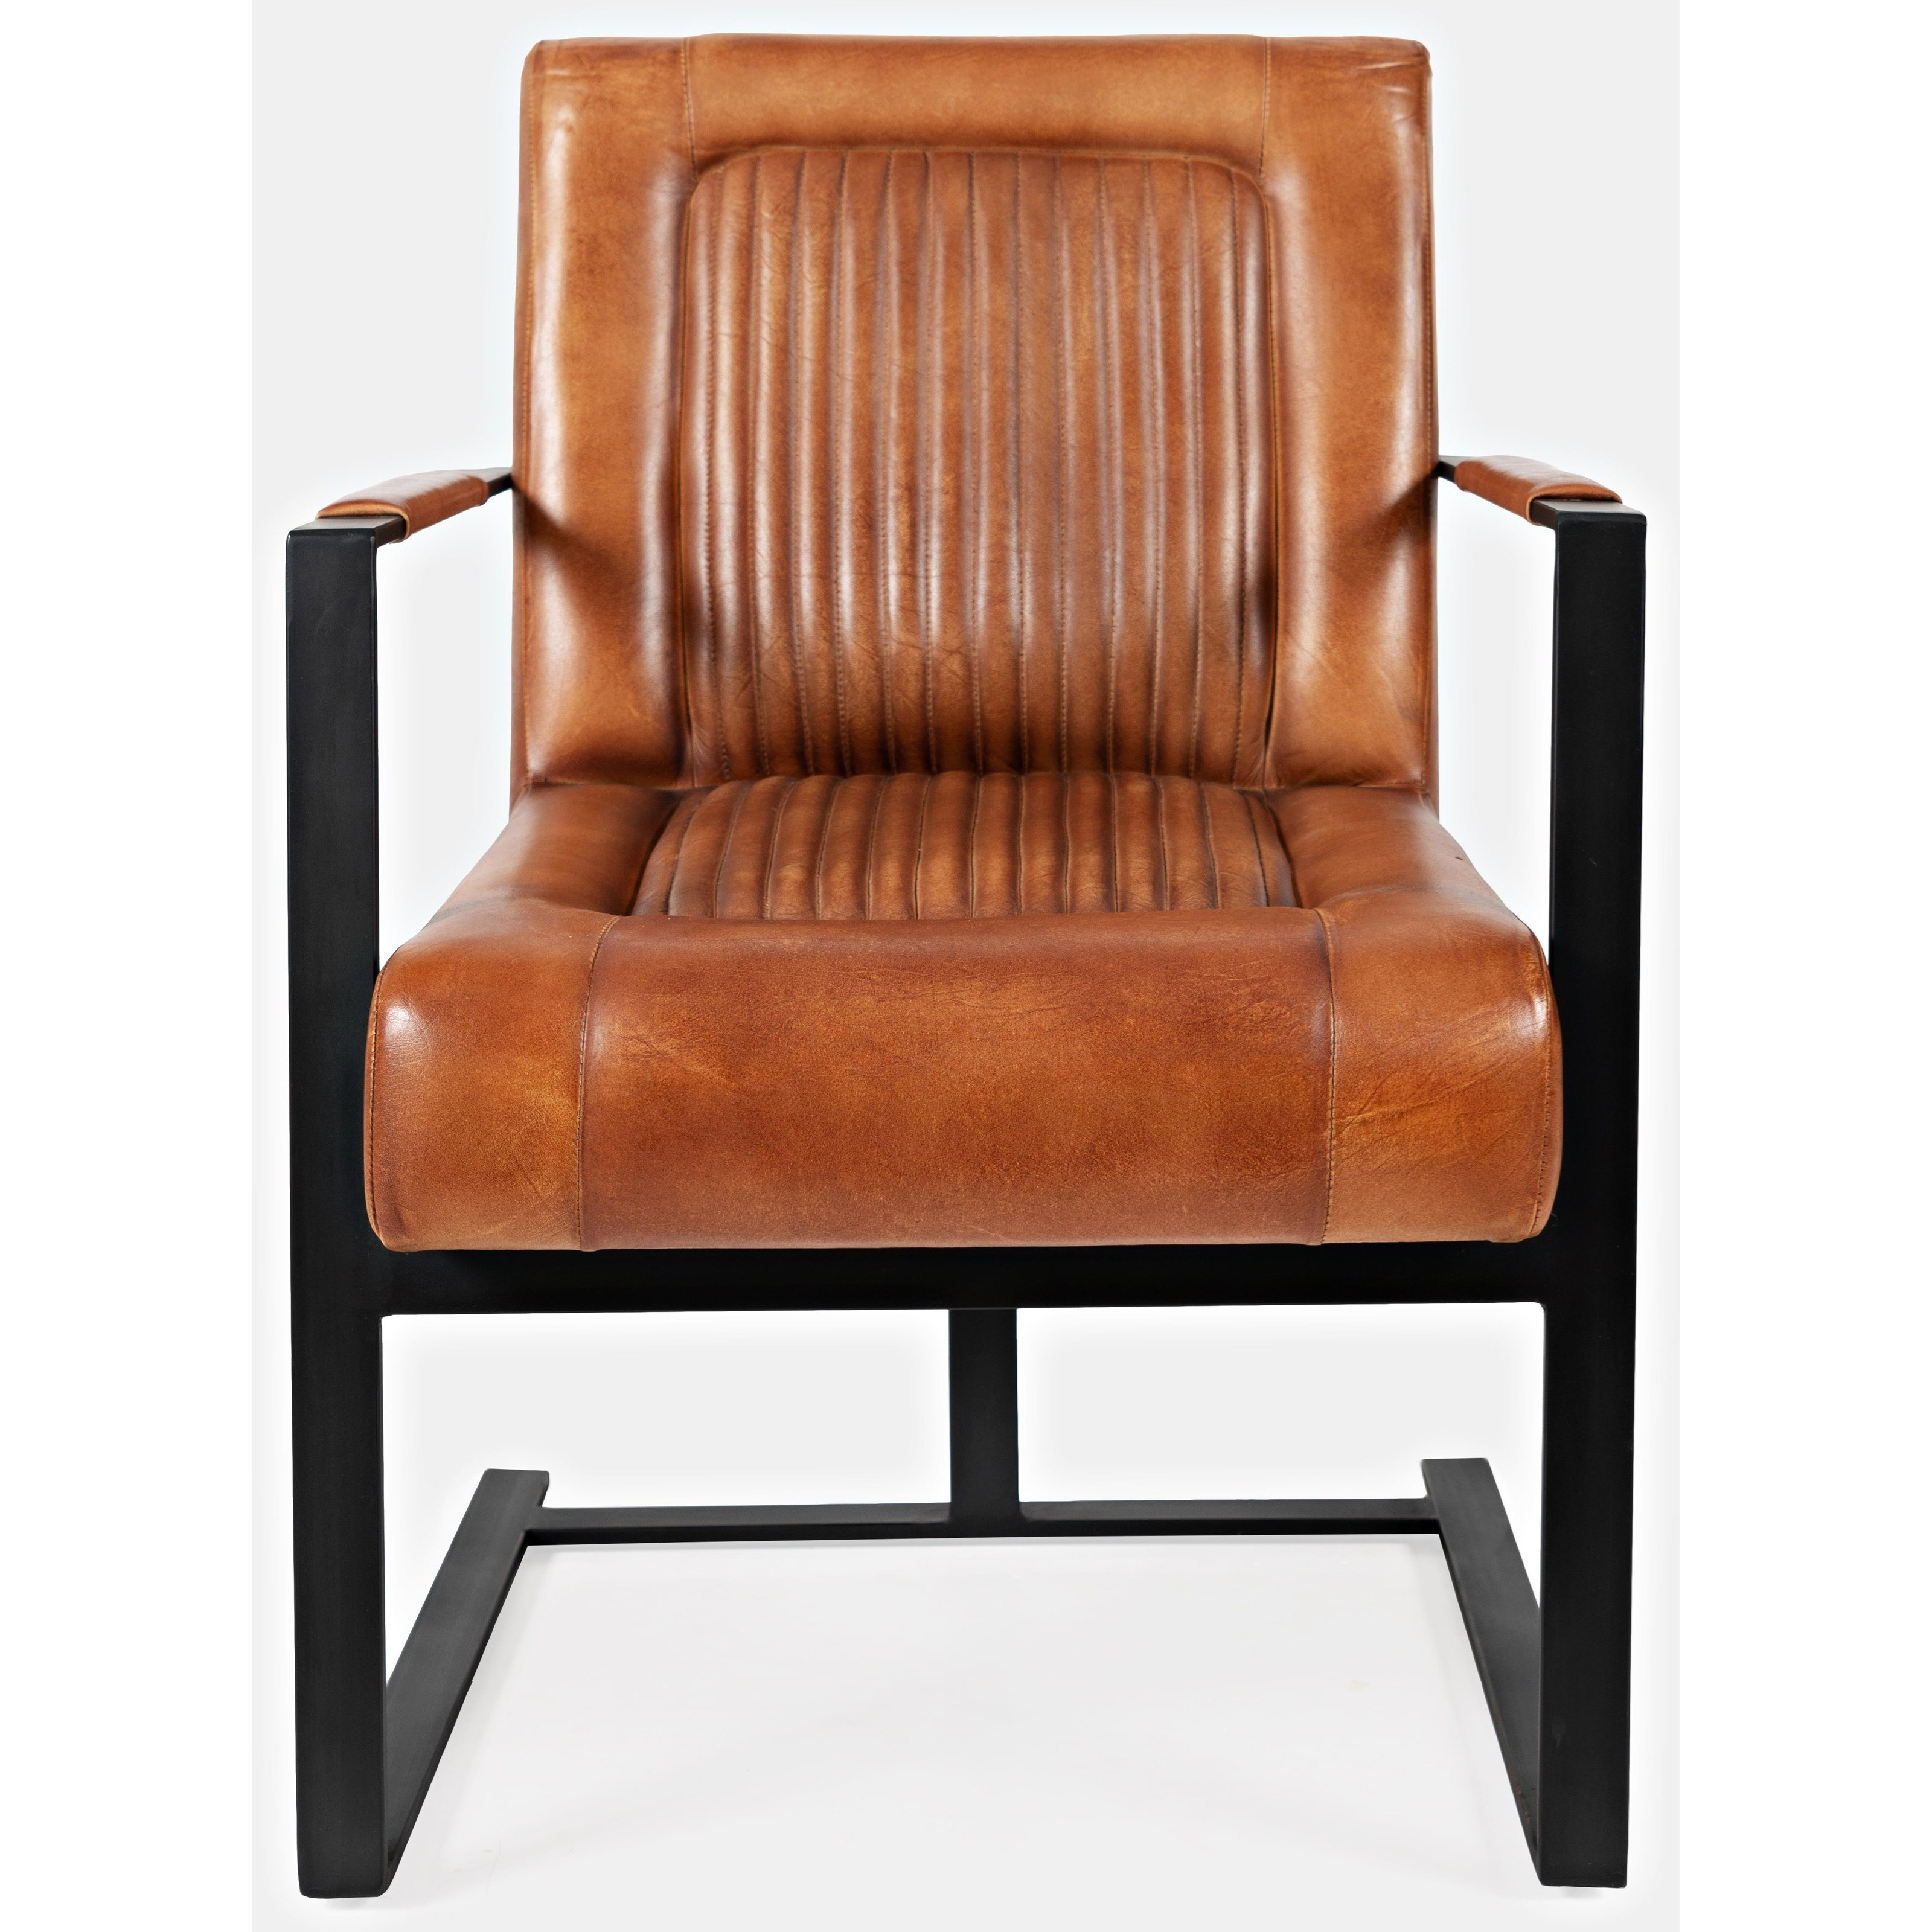 Maguire Maguire Chair by Jofran at Jofran